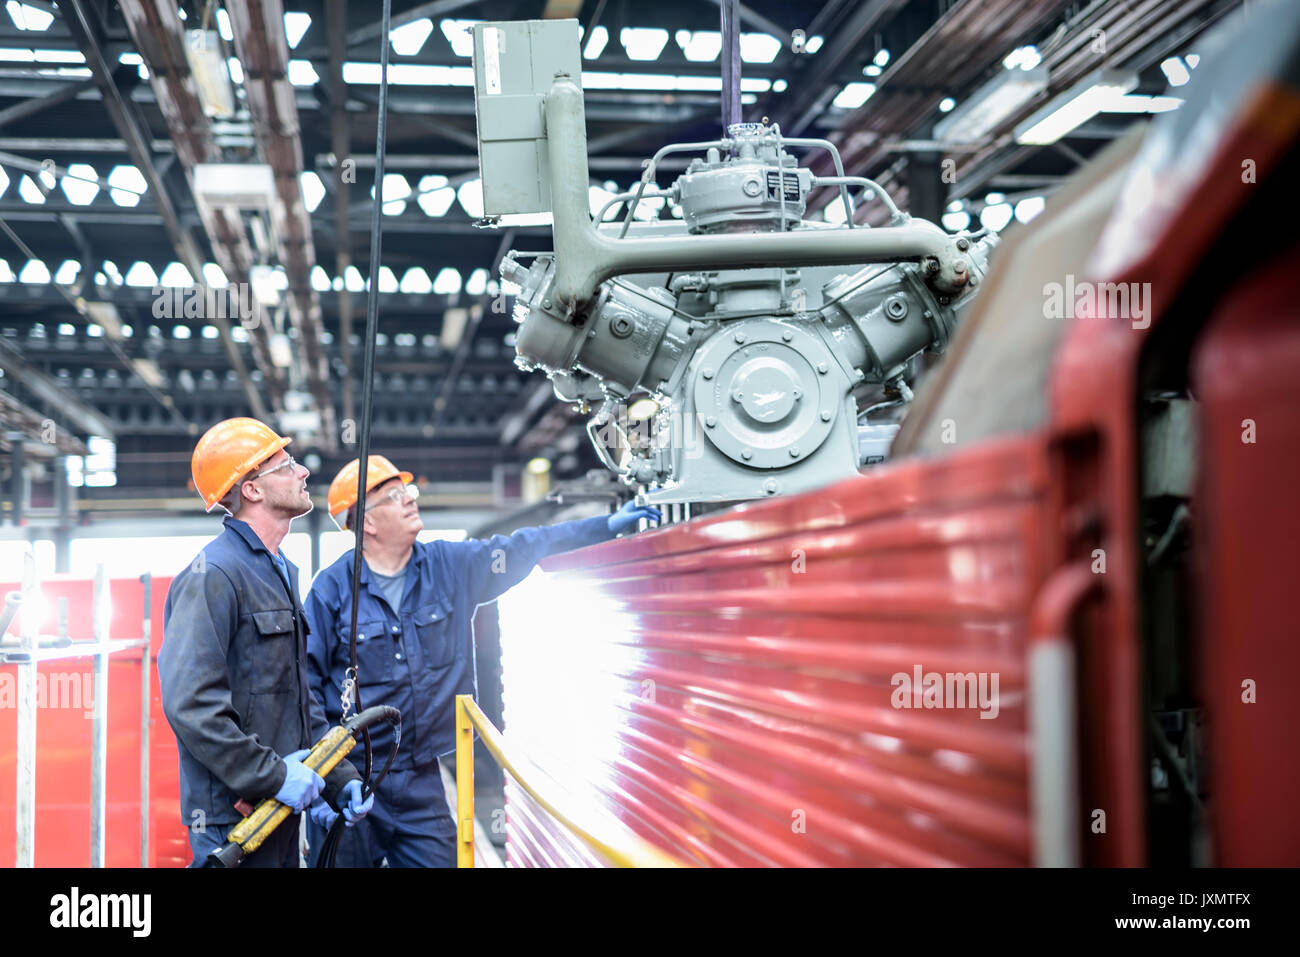 Locomotive engineers craning engine parts in train works - Stock Image